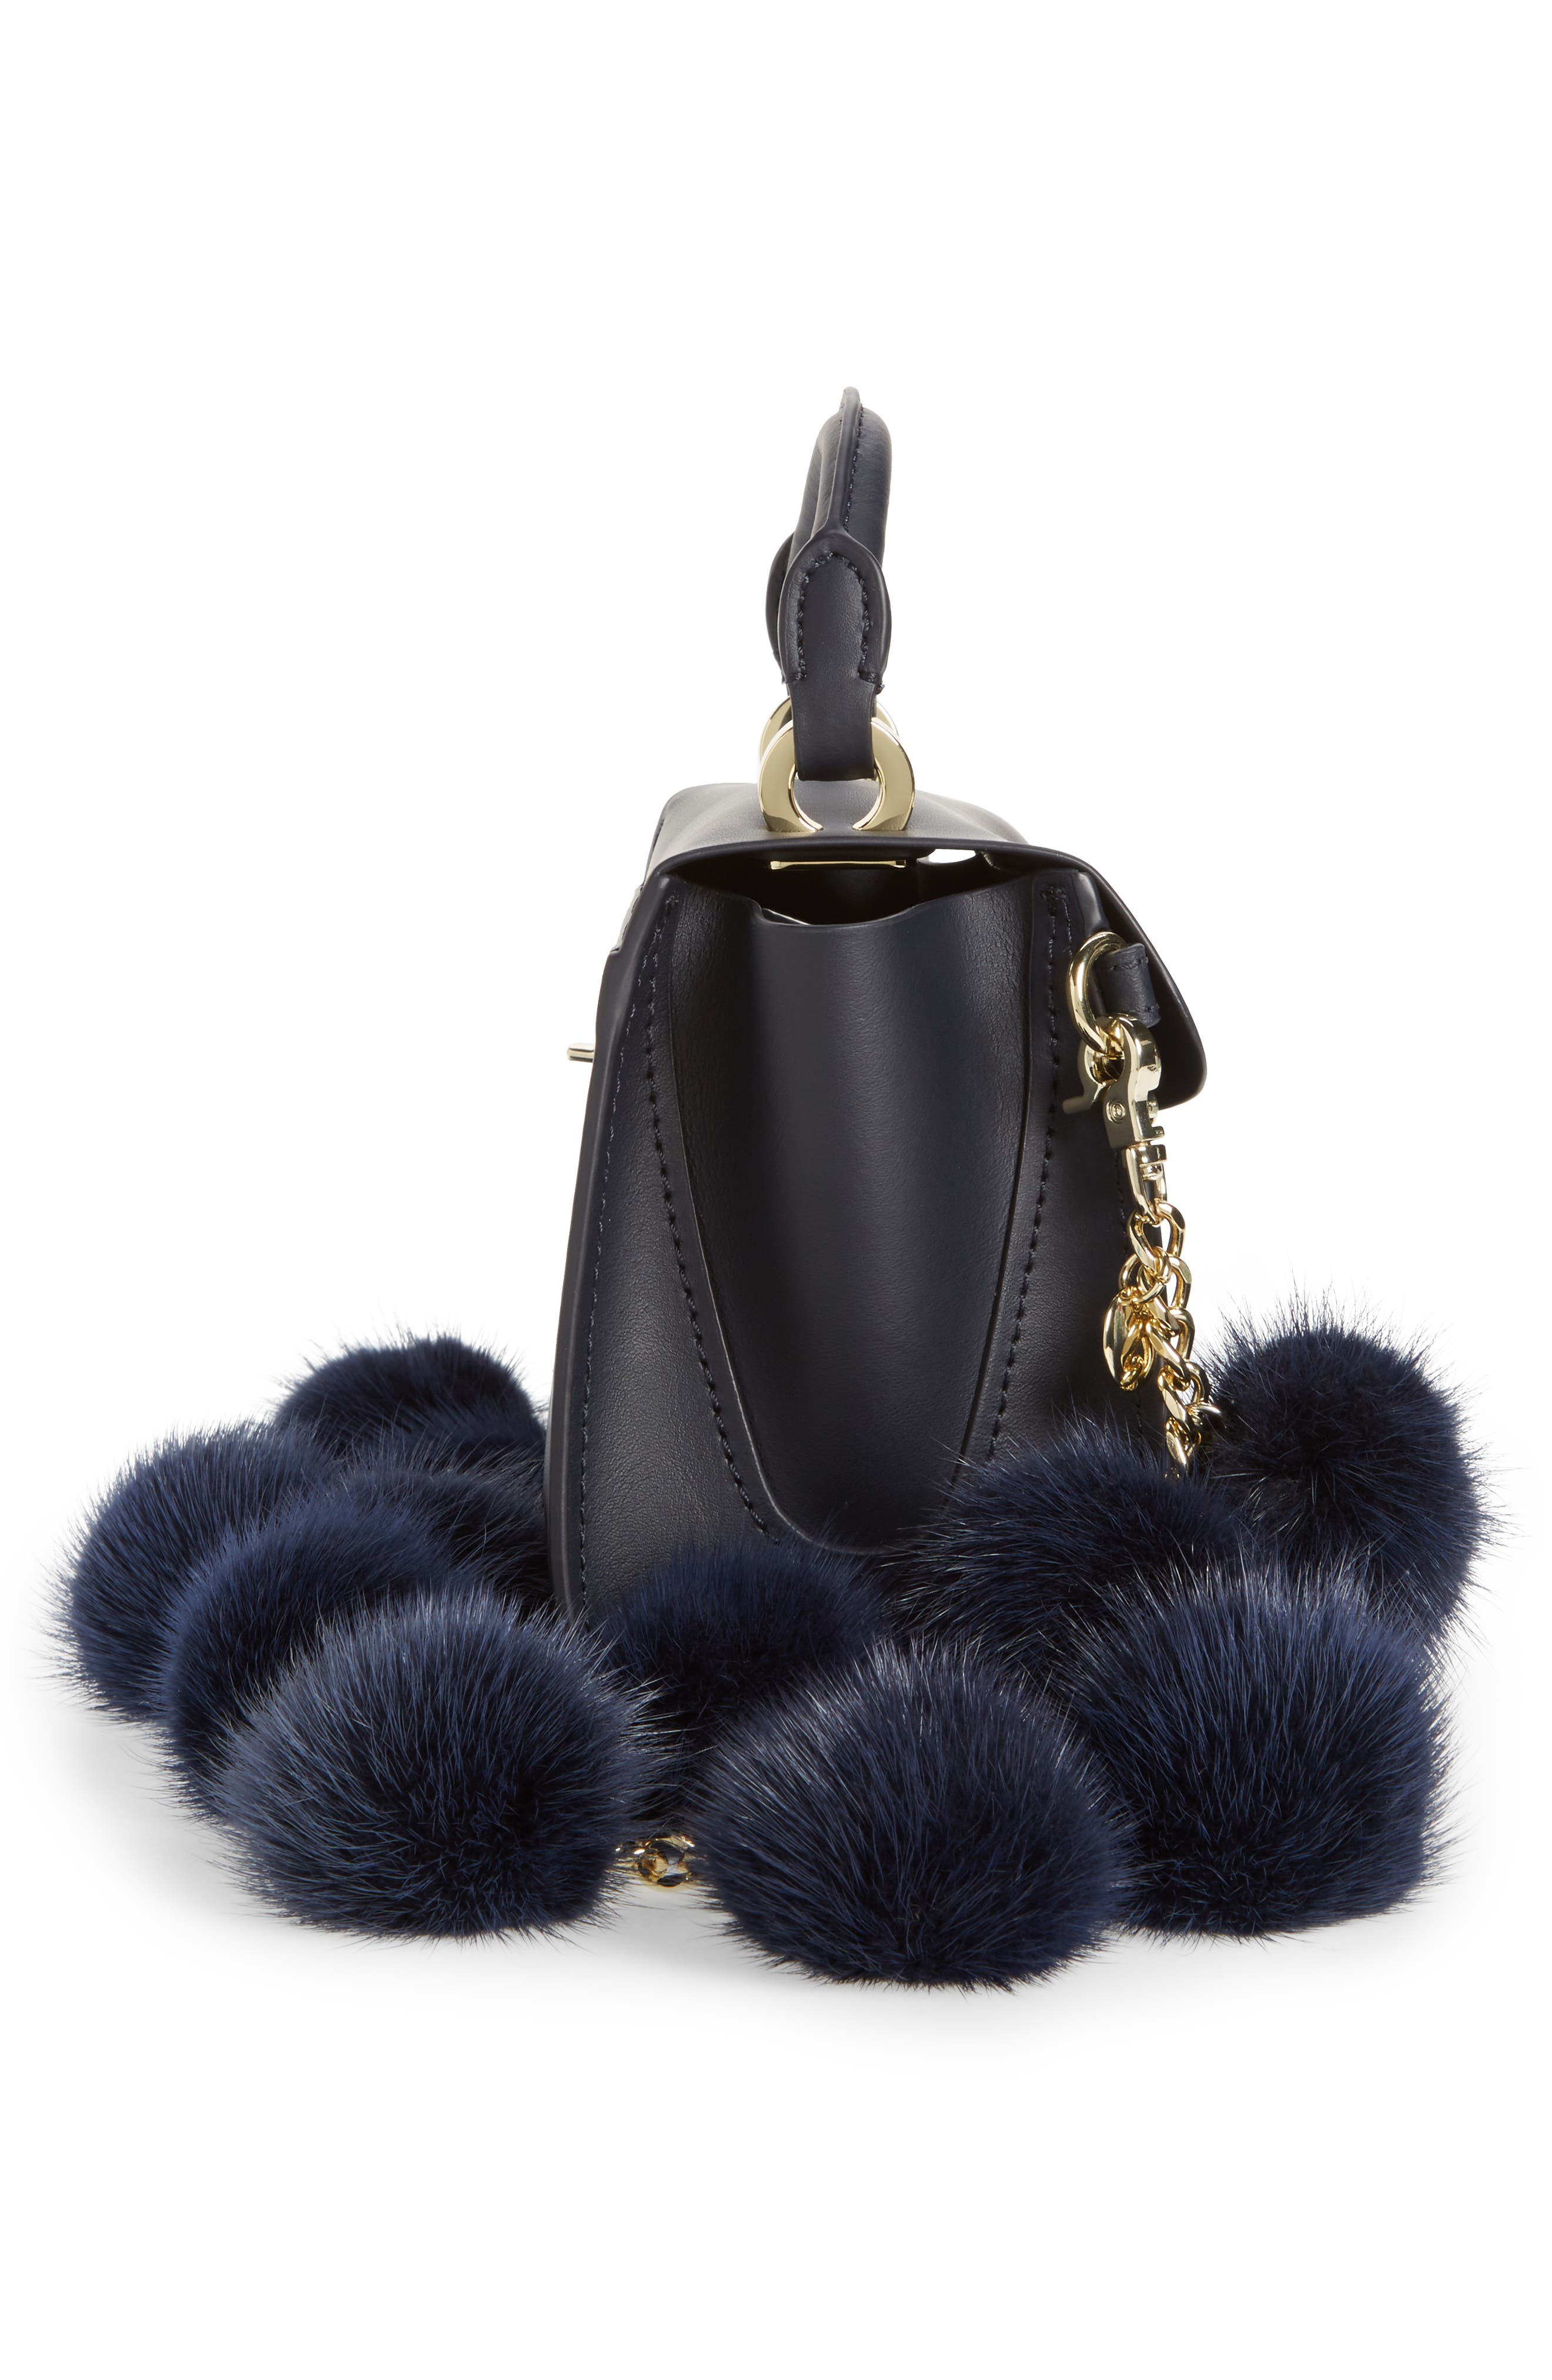 Eartha Iconic Leather Satchel with Genuine Mink Fur Strap,                             Alternate thumbnail 6, color,                             410